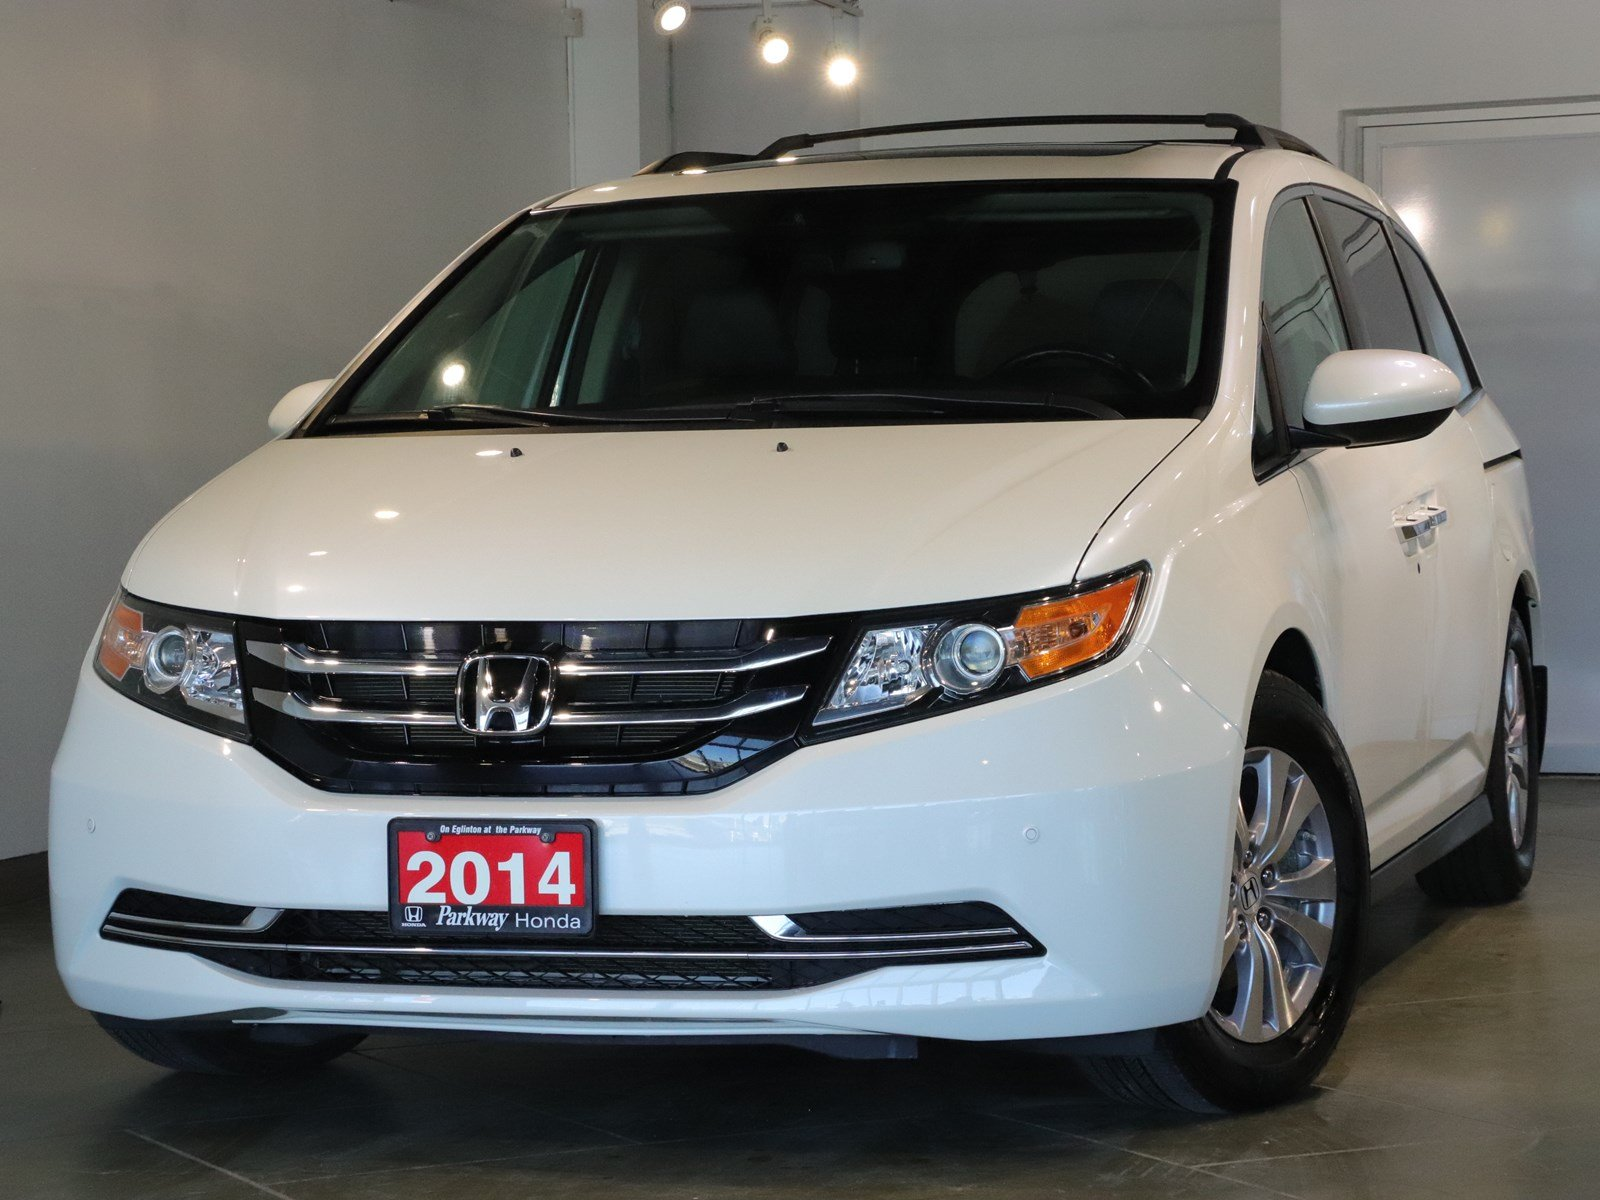 Photo Pre-Owned 2014 Honda Odyssey EXL RES - ONE OWNER, ADVENTURE READY WITH BLINDSPOT CAMERA FWD Mini-van, Passenger